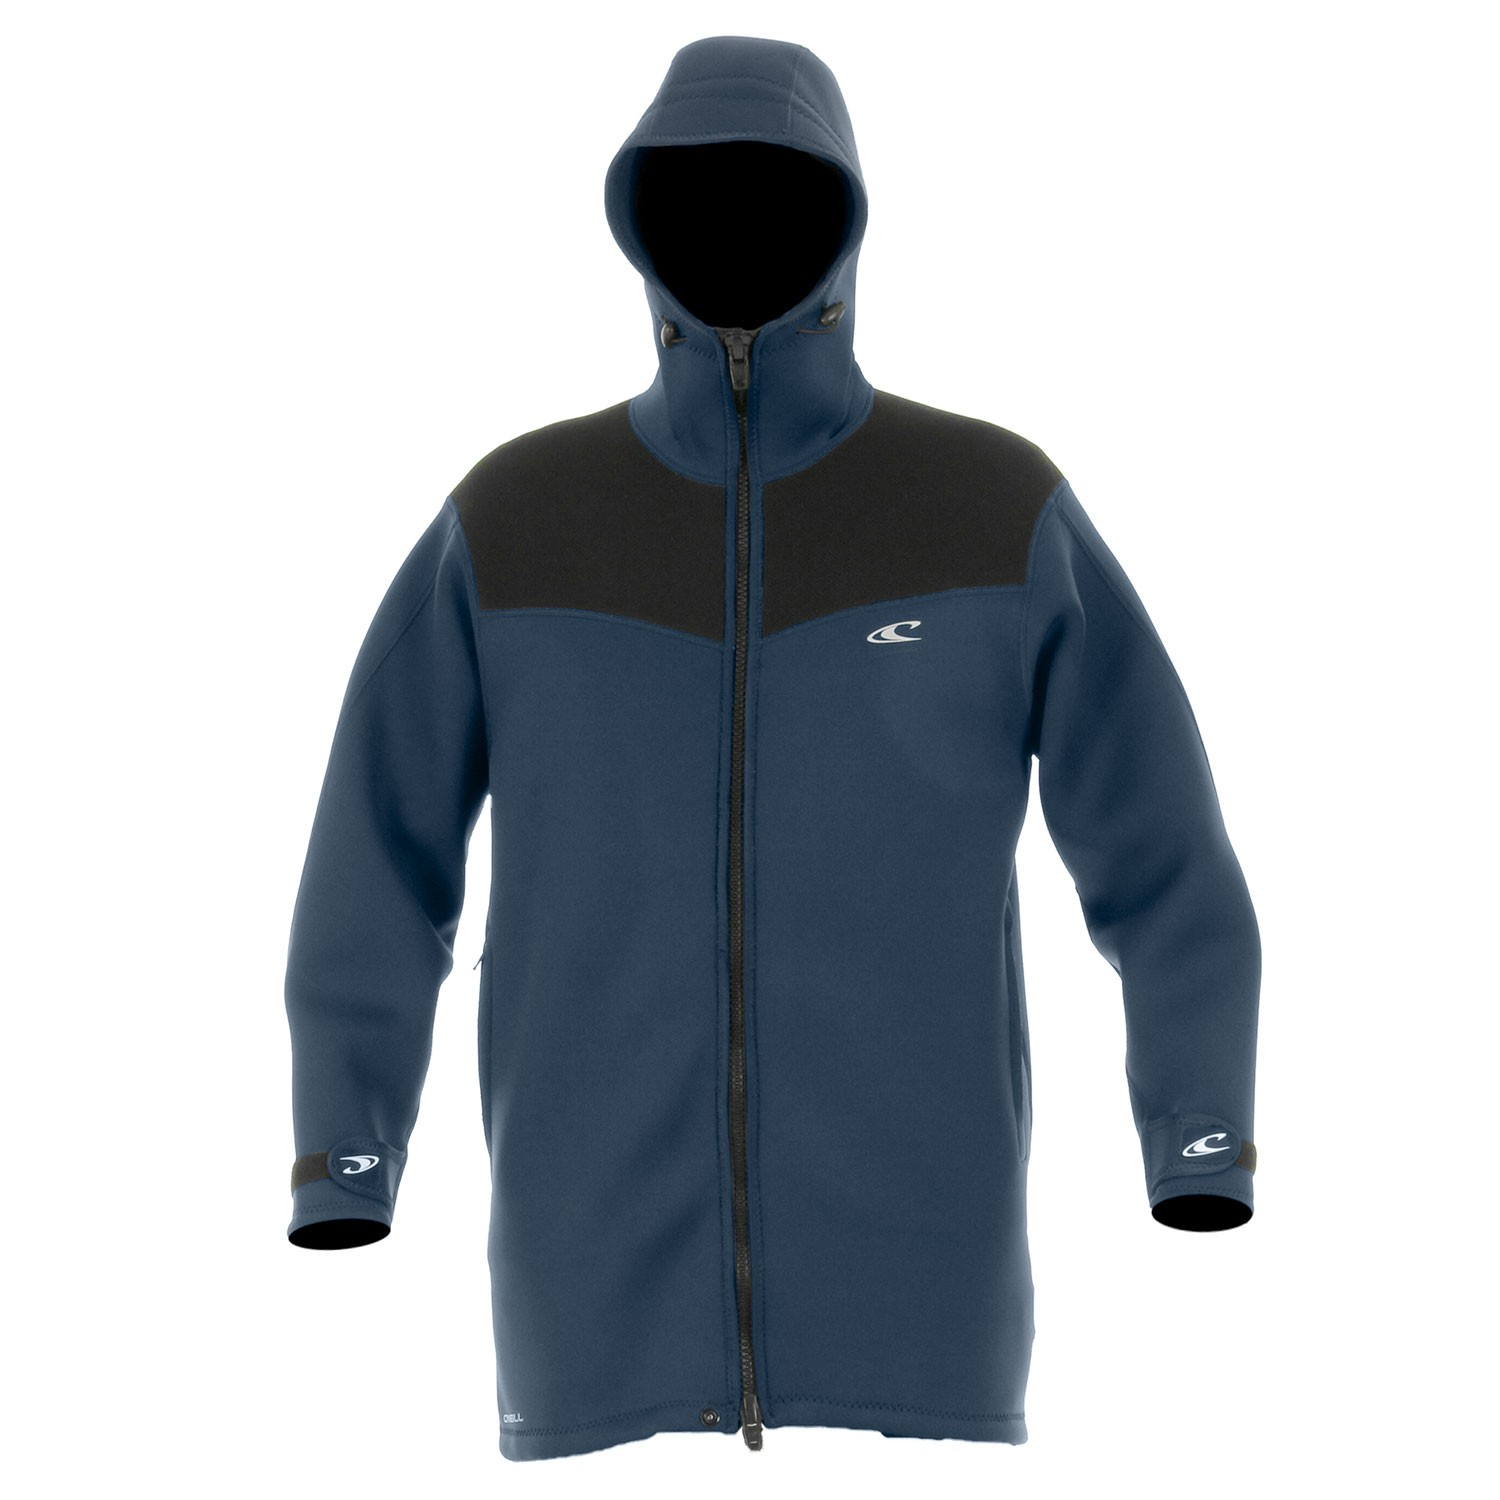 O'Neill Chill Killer 2mm Jacket navy